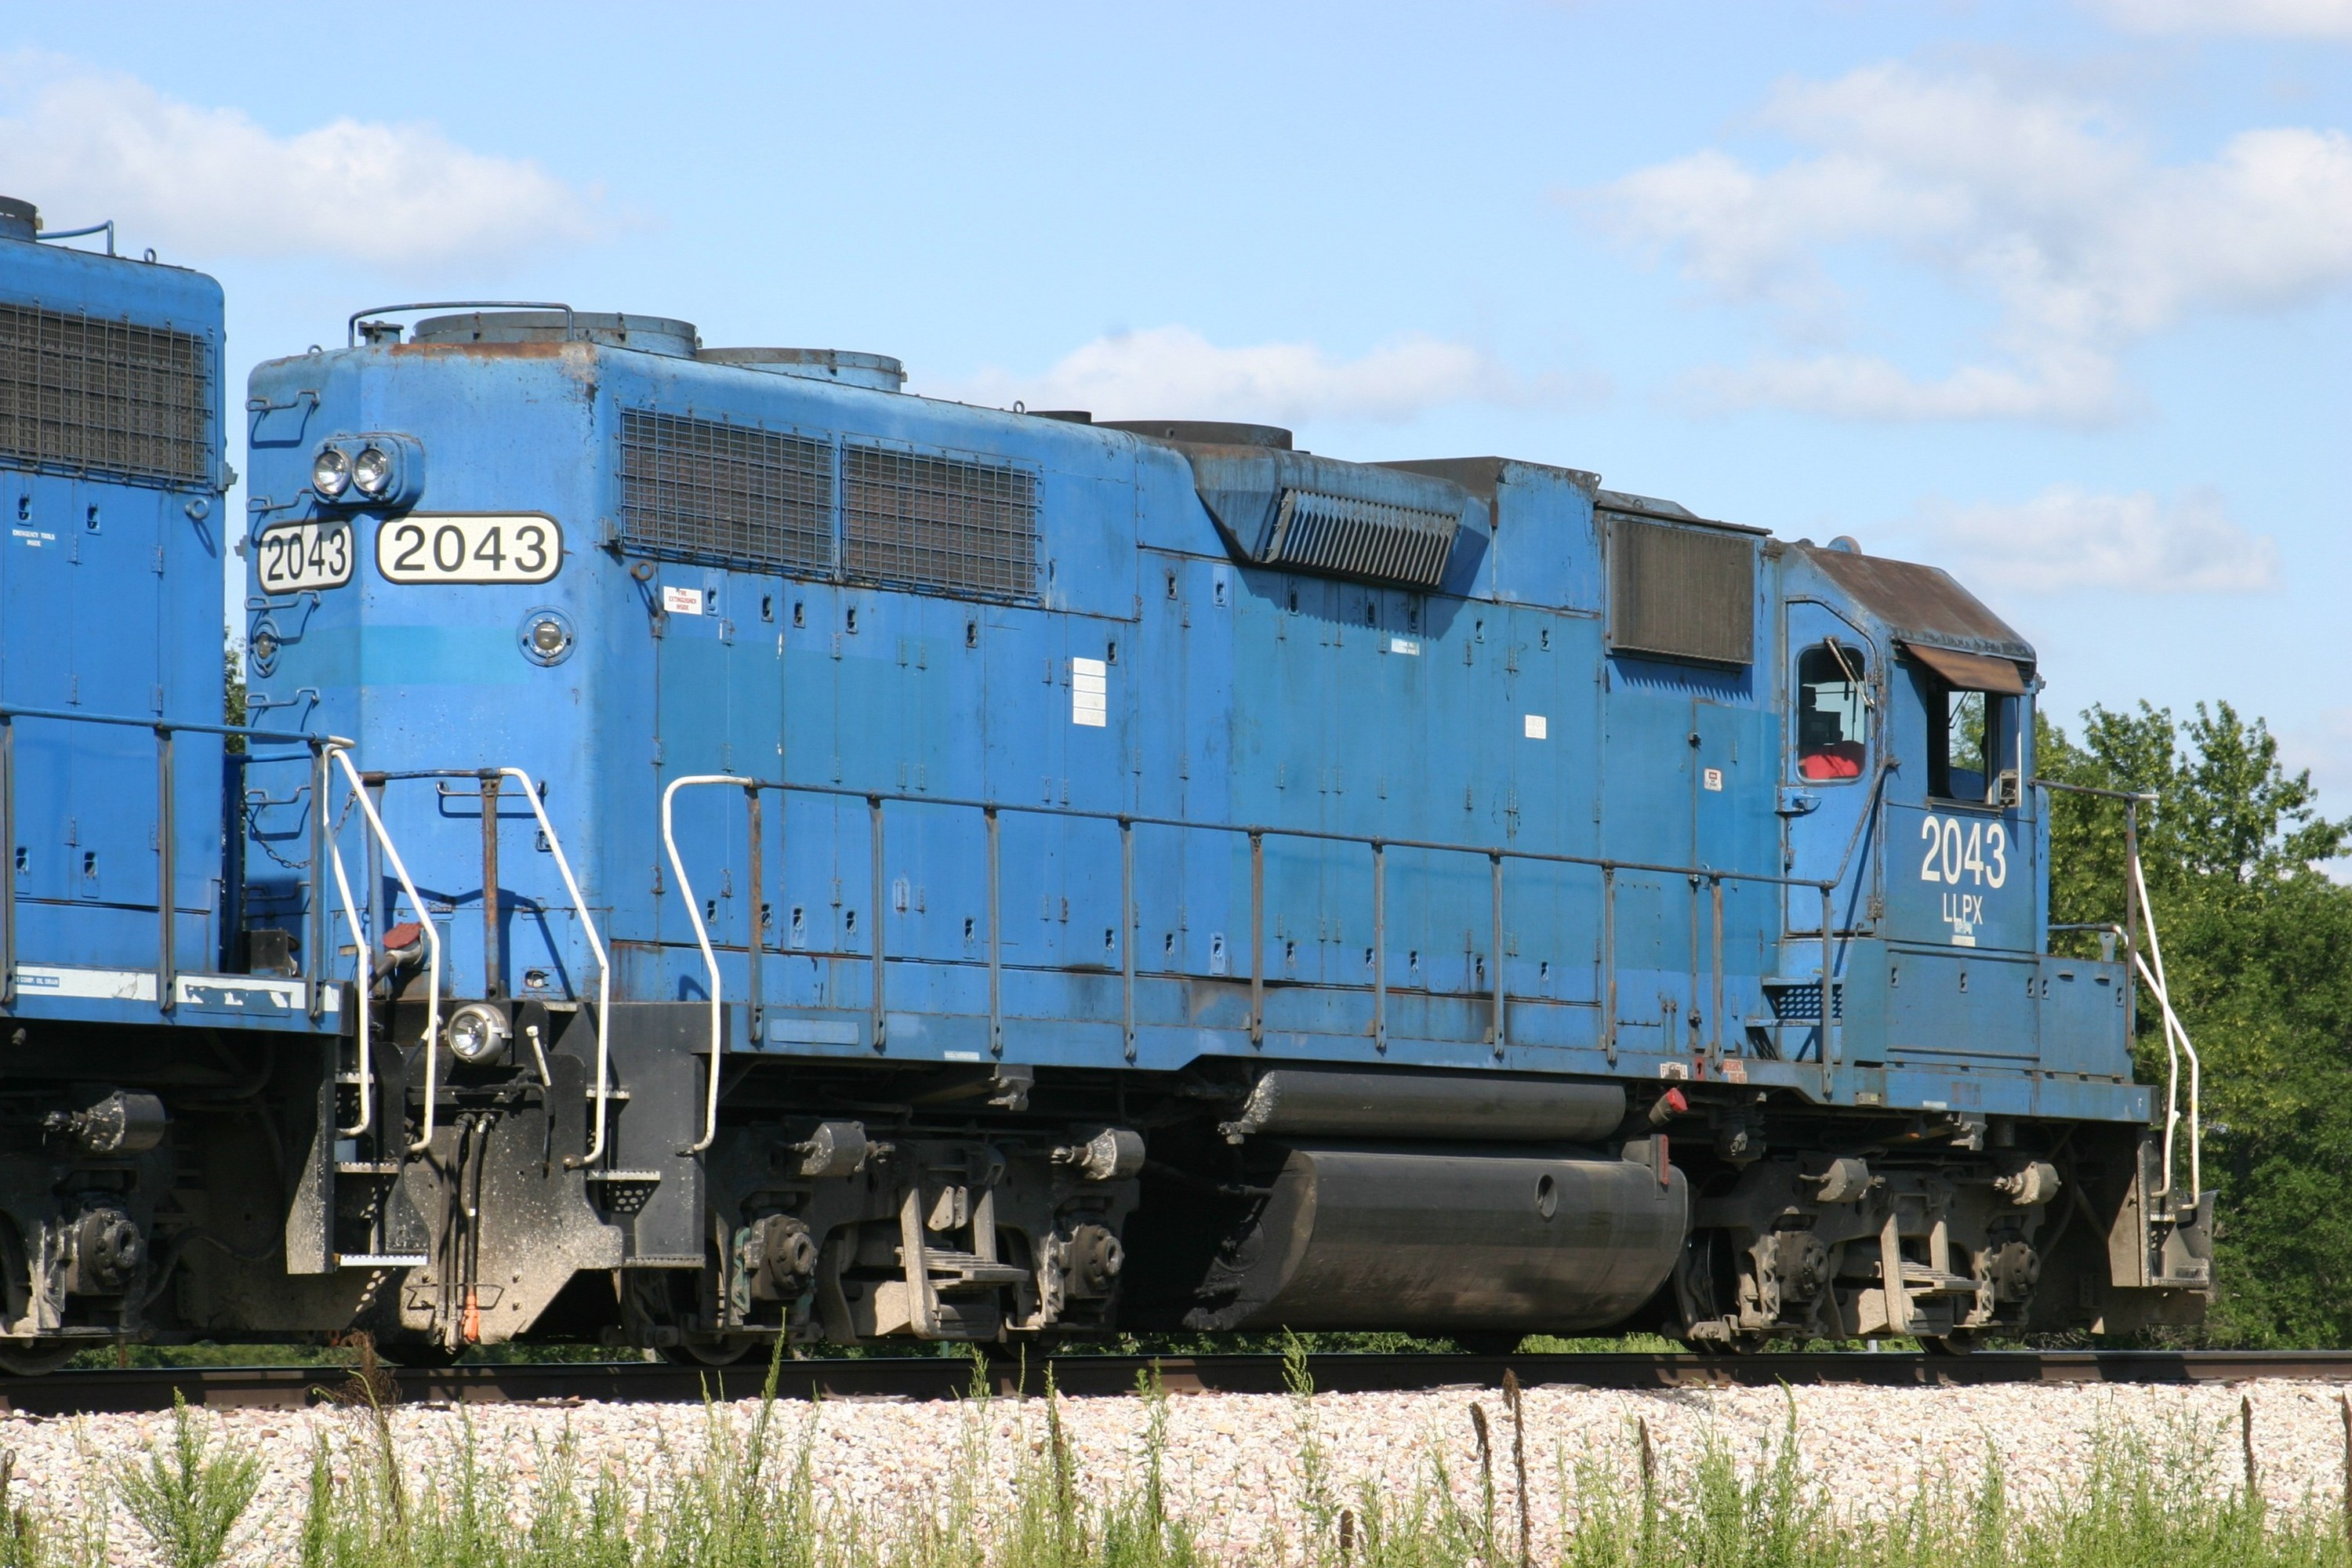 LLPX 2043 at Yocum Connection, IA on 07-Aug-2004